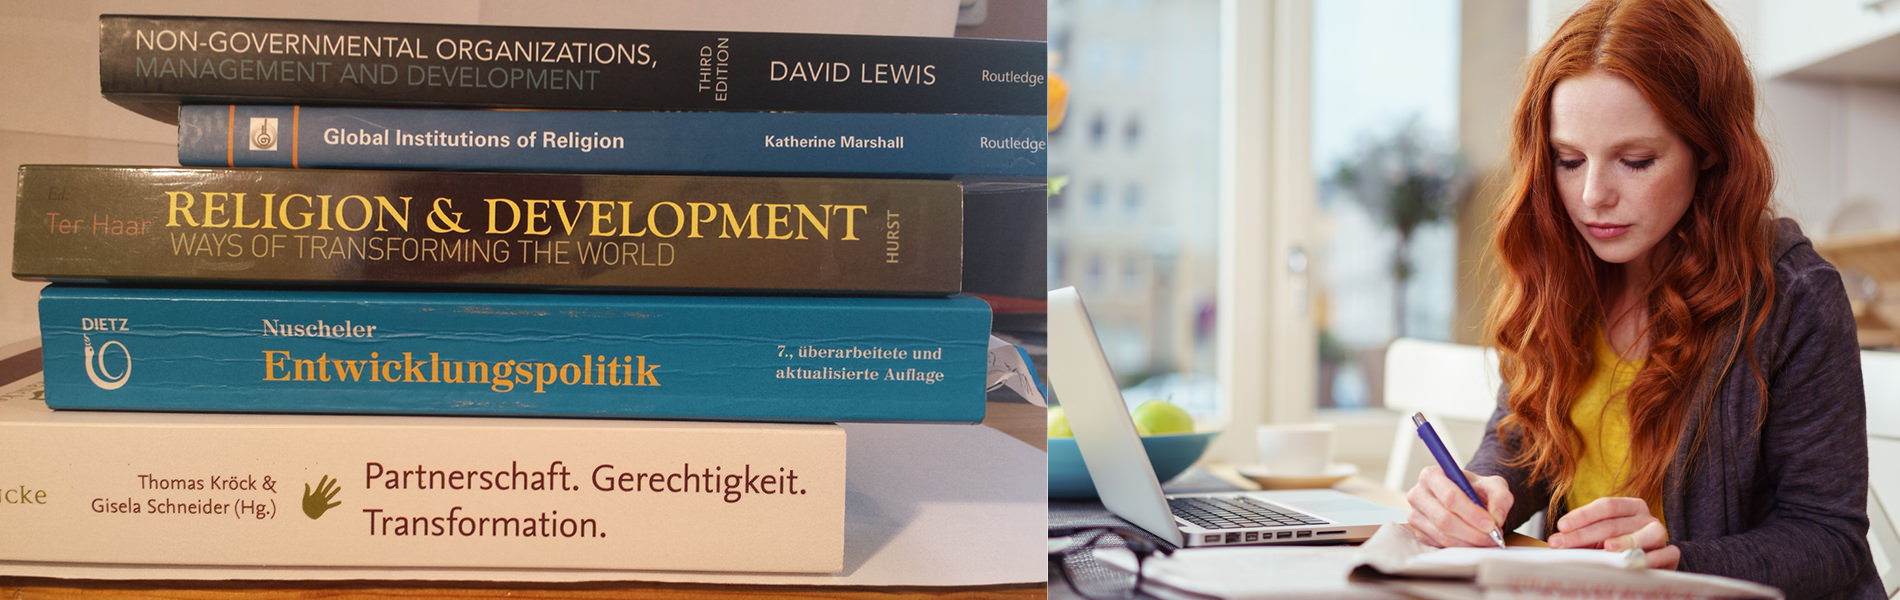 Studentin am Laptop und Development Bücher